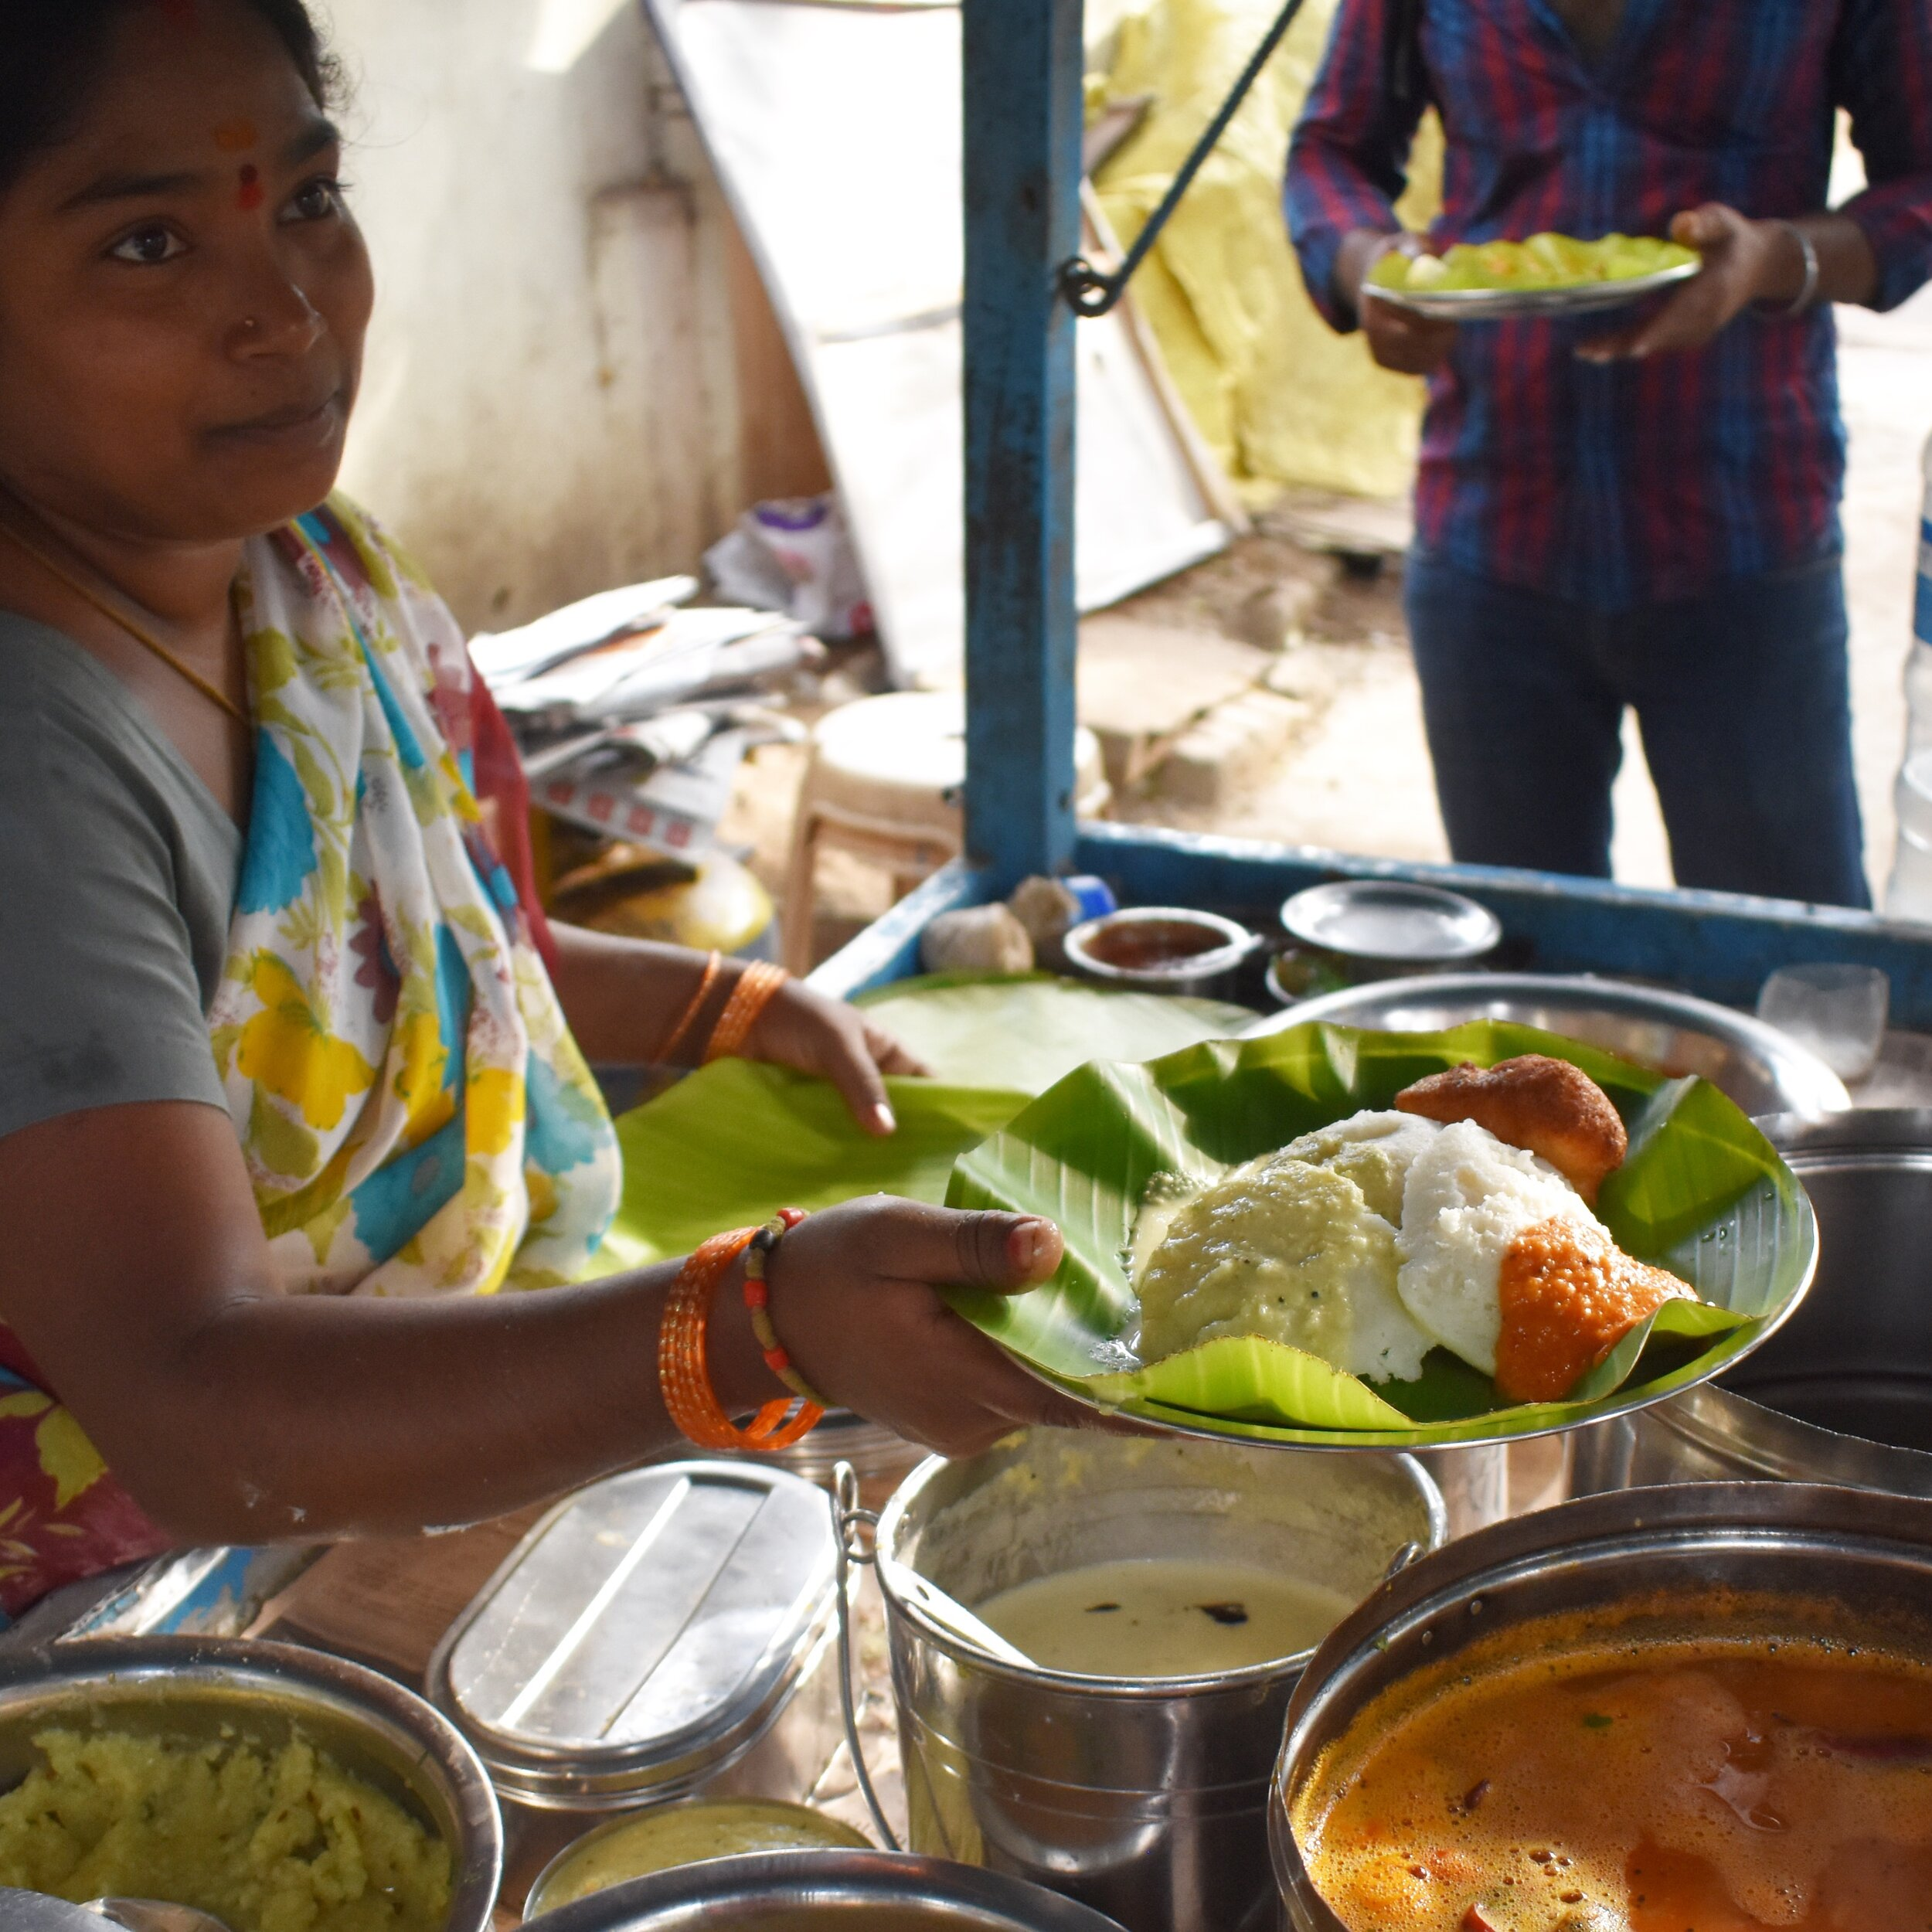 travel-india-lunch-served.jpg